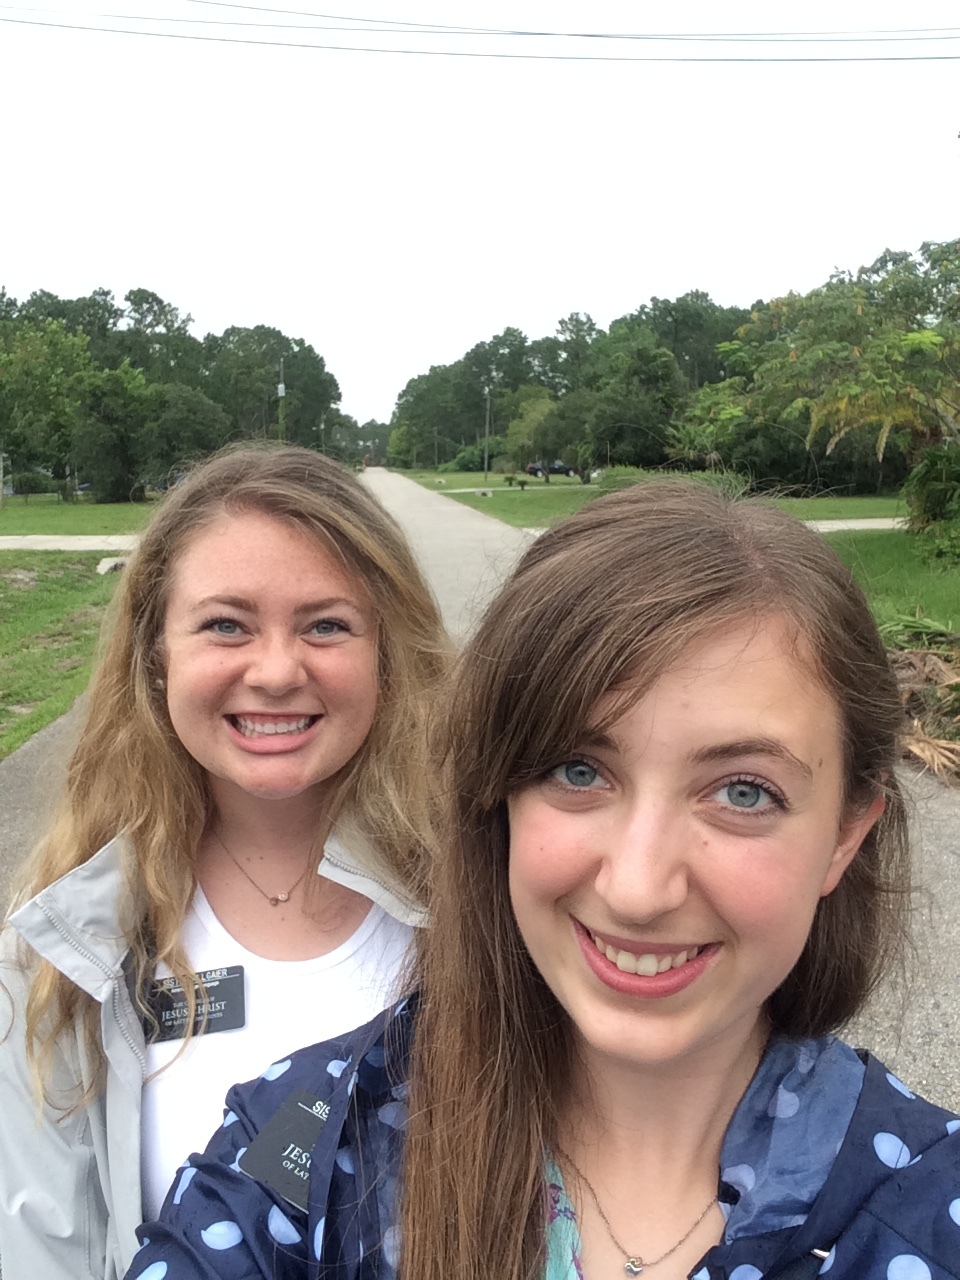 Oh and we survived transfers. Sister McConnell and I are staying in St. Augustine Shores for another transfer!!